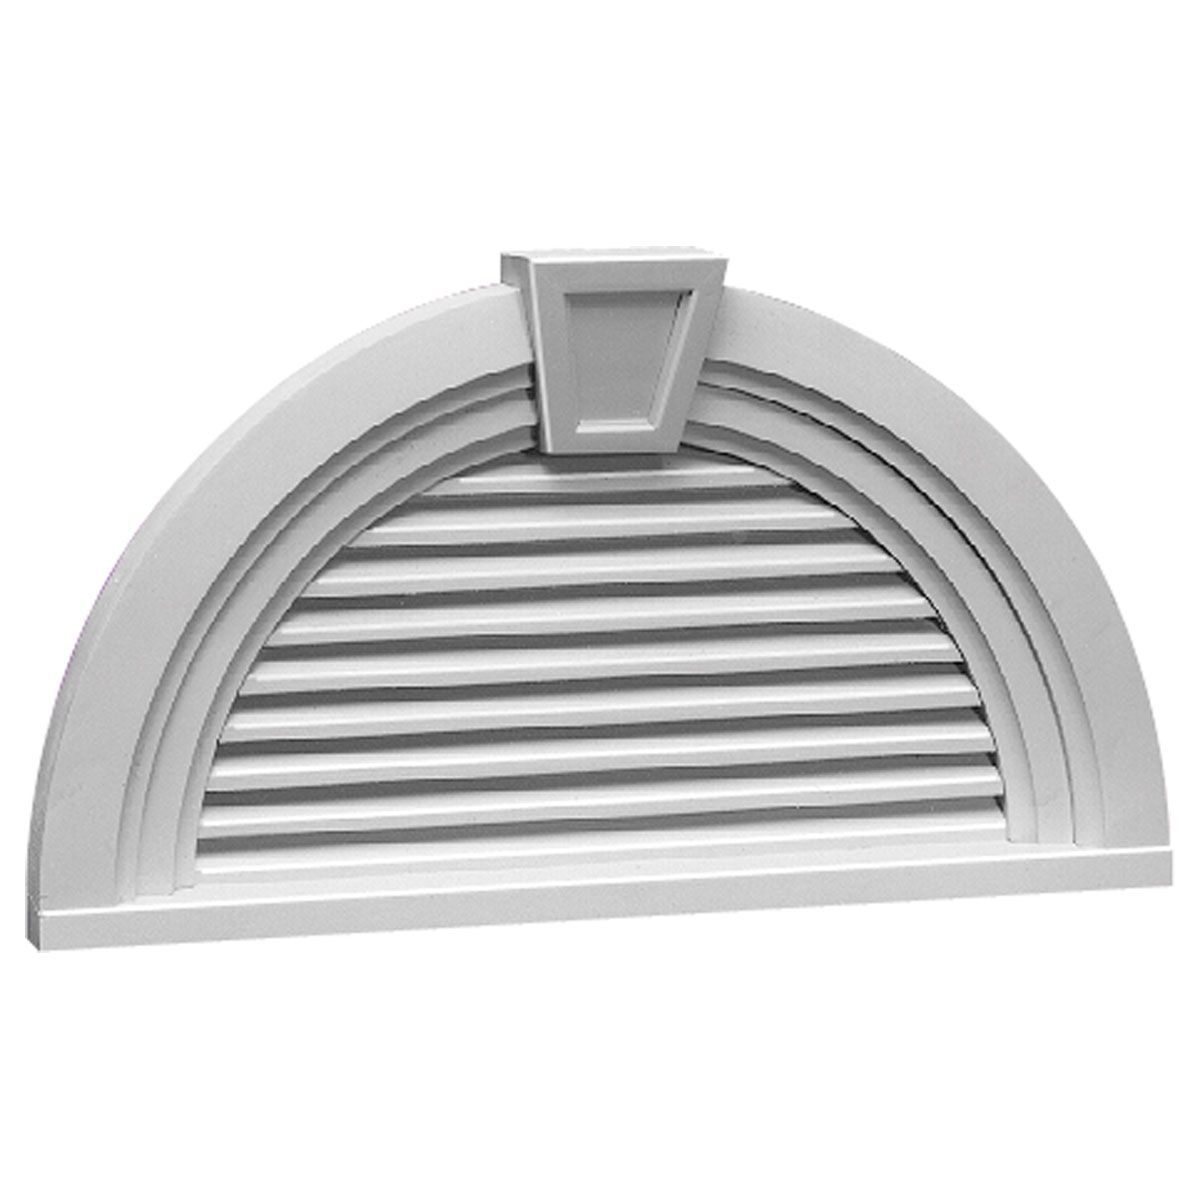 36 Inch W X 18 9 16 Inch H X 3 Inch P Half Round Louver With Non Functional Trim Keystone Non Functional Window Trim Exterior Gable Vents Exterior Trim